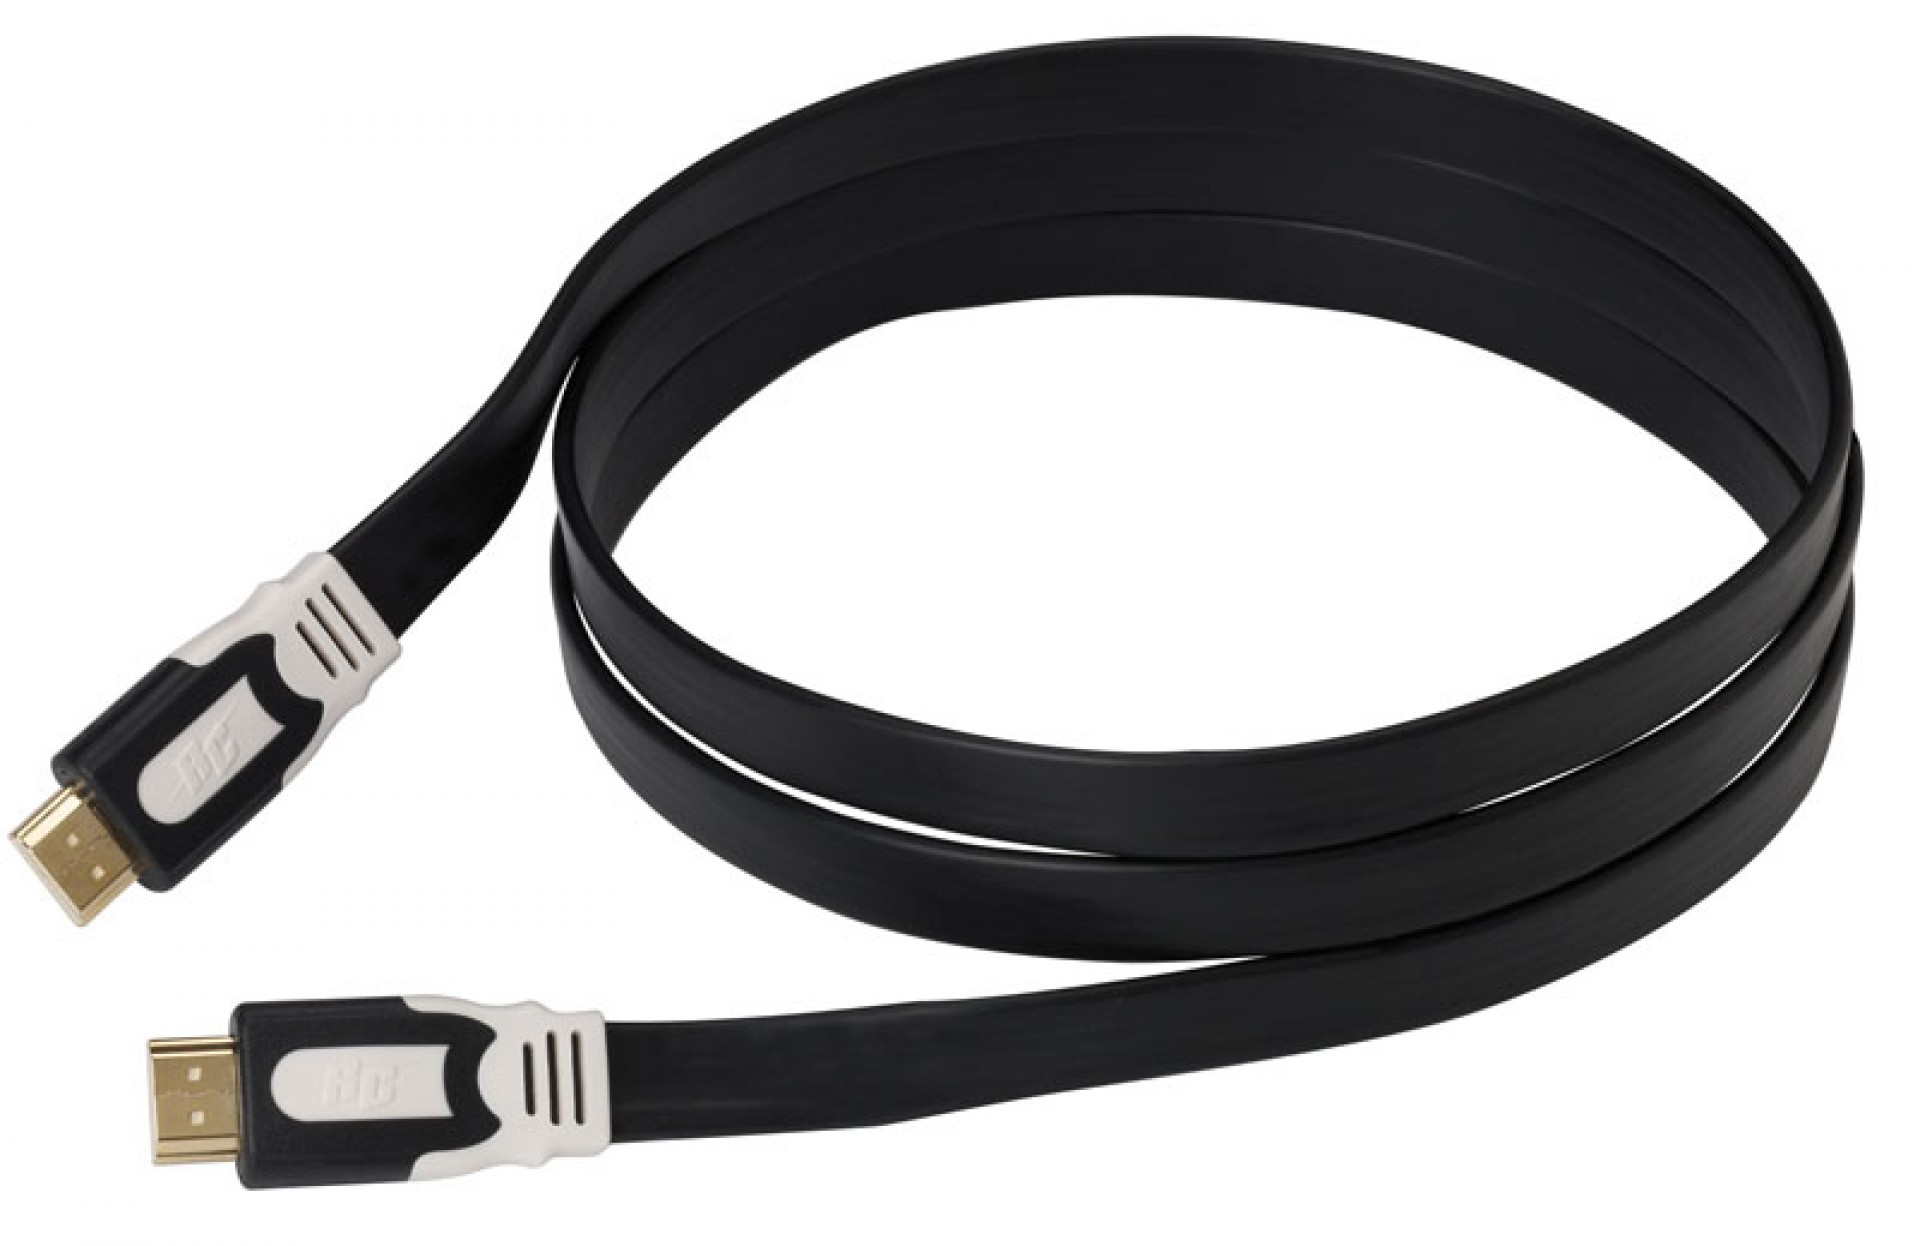 REAL CABLE HD E ONYX / 1m